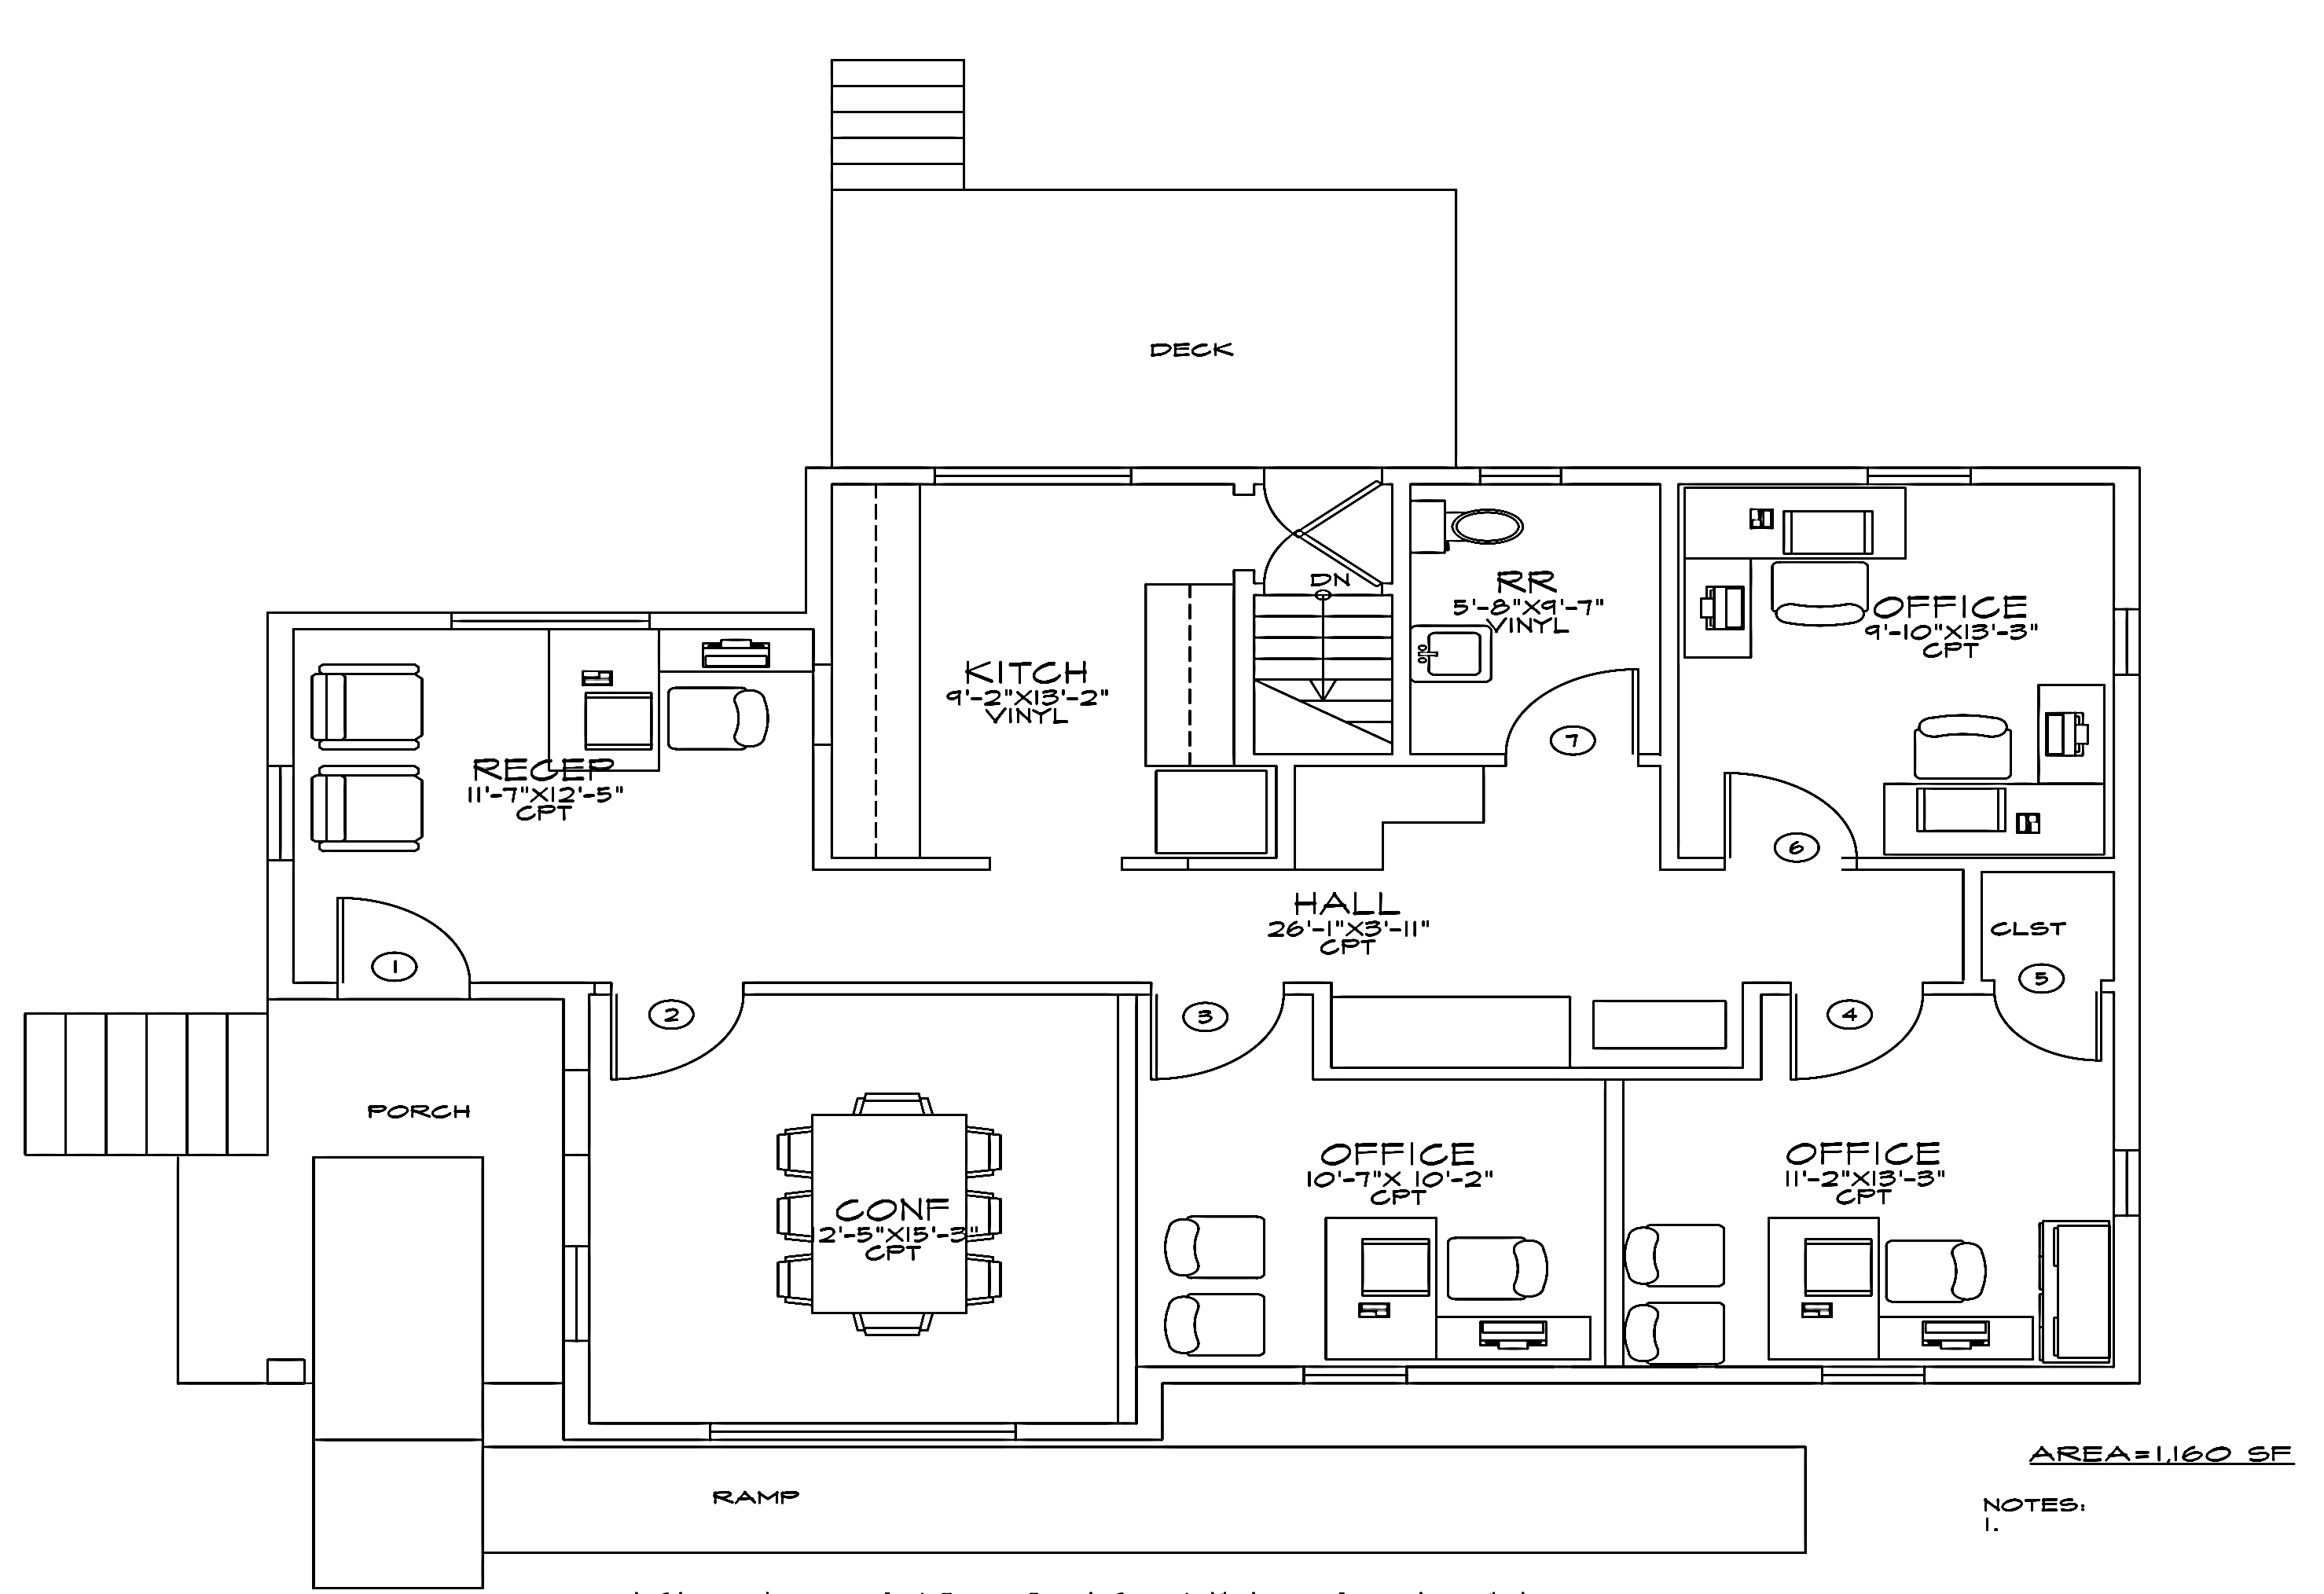 Floor plan for office celtic arts foundation for Office planner